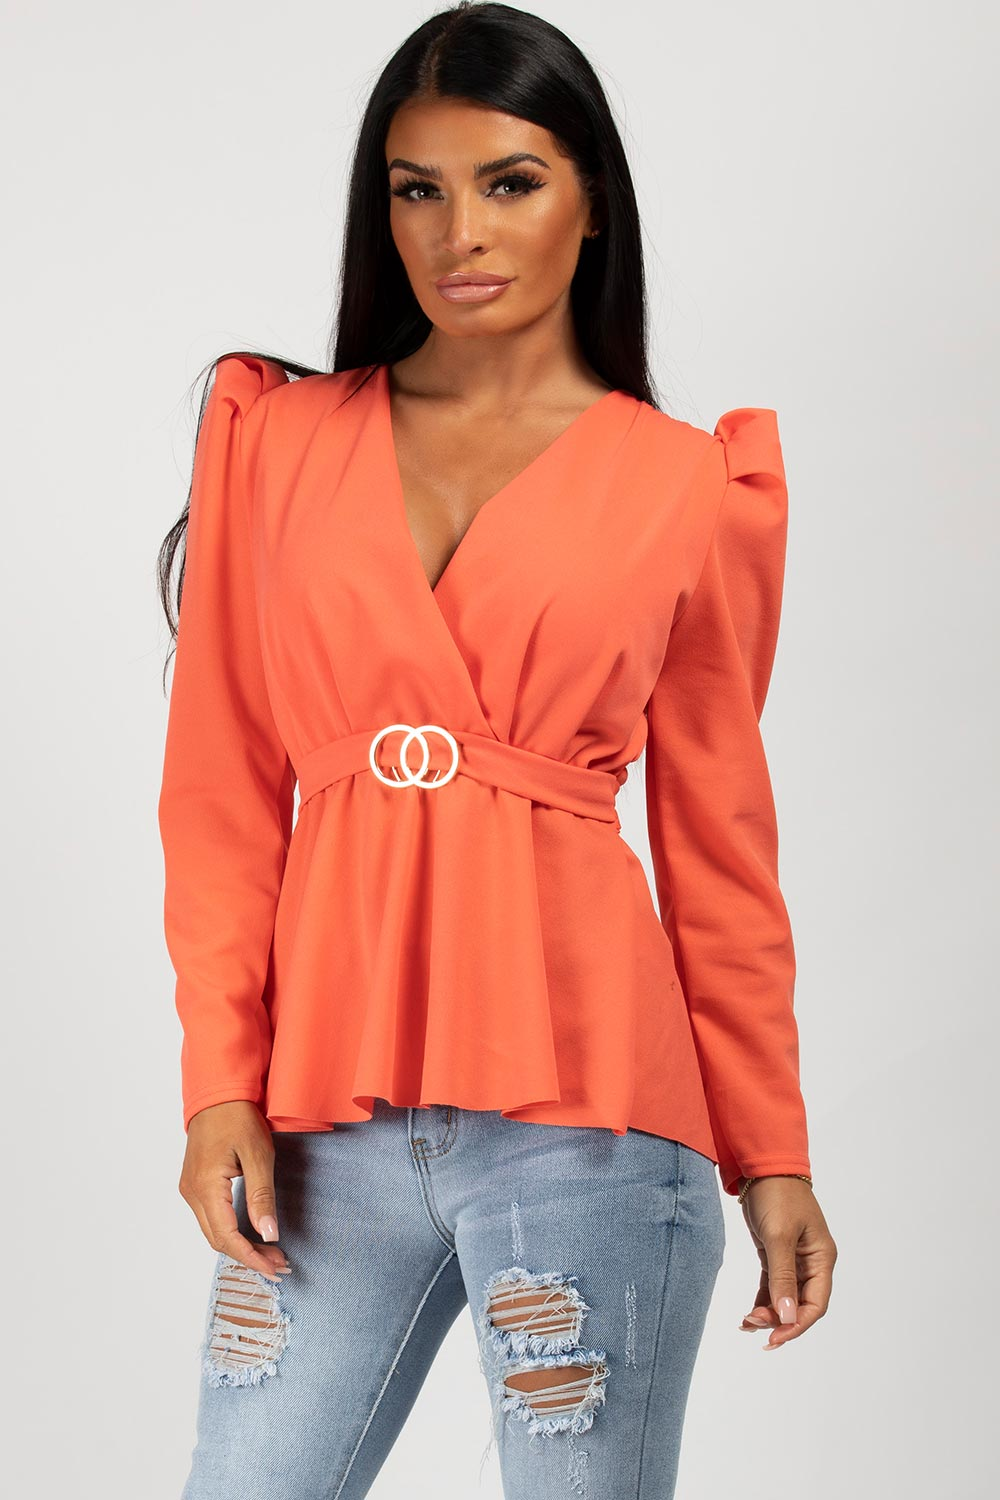 puff sleeve cc buckle top